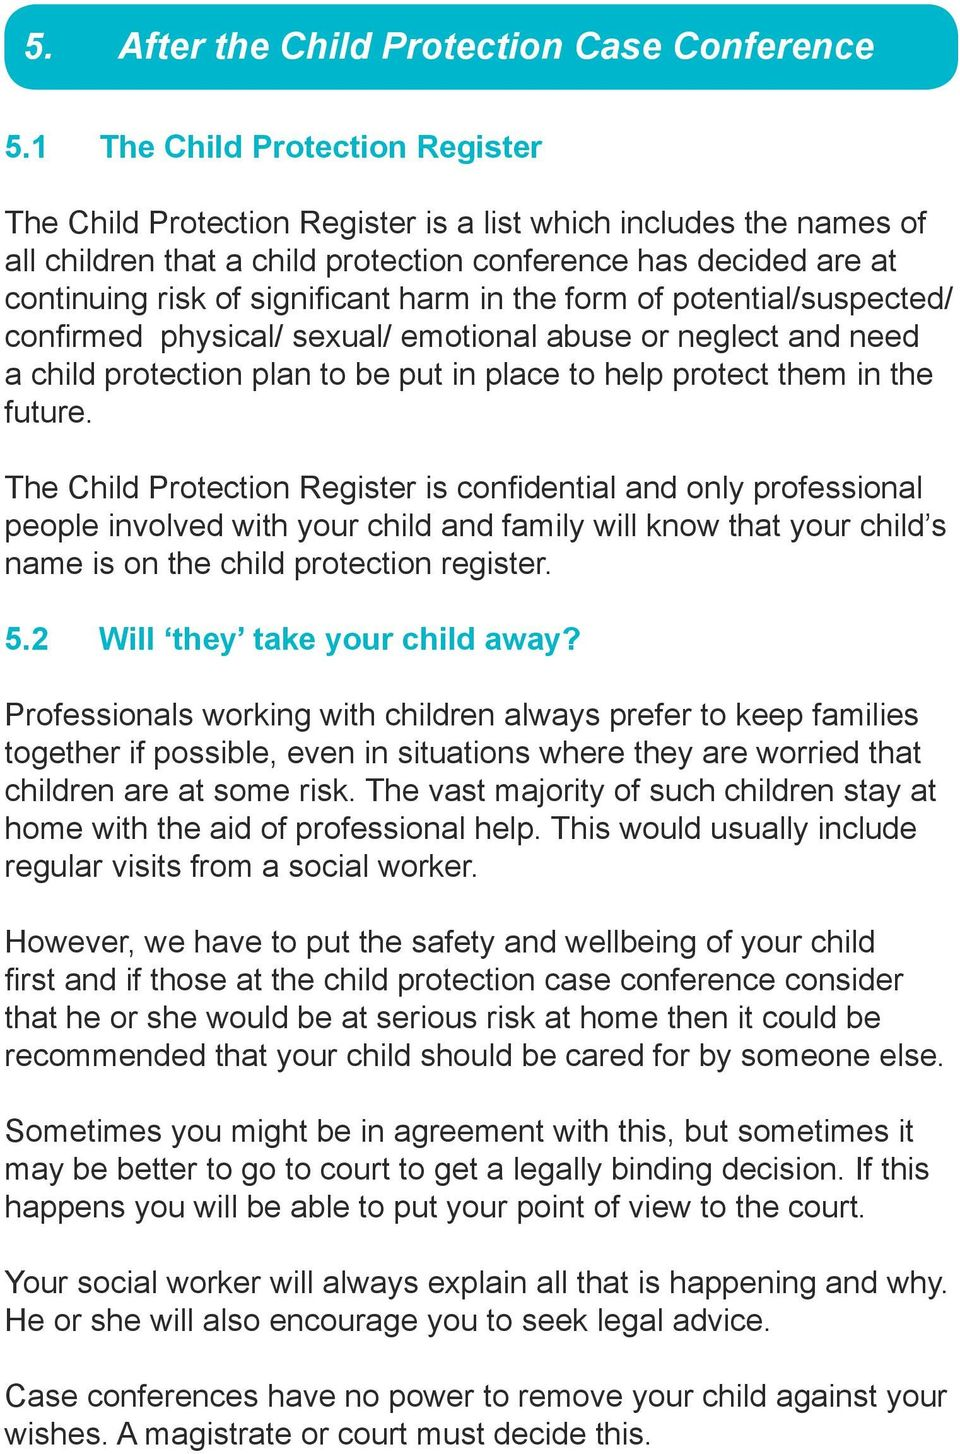 harm in the form of potential/suspected/ confirmed physical/ sexual/ emotional abuse or neglect and need a child protection plan to be put in place to help protect them in the future.